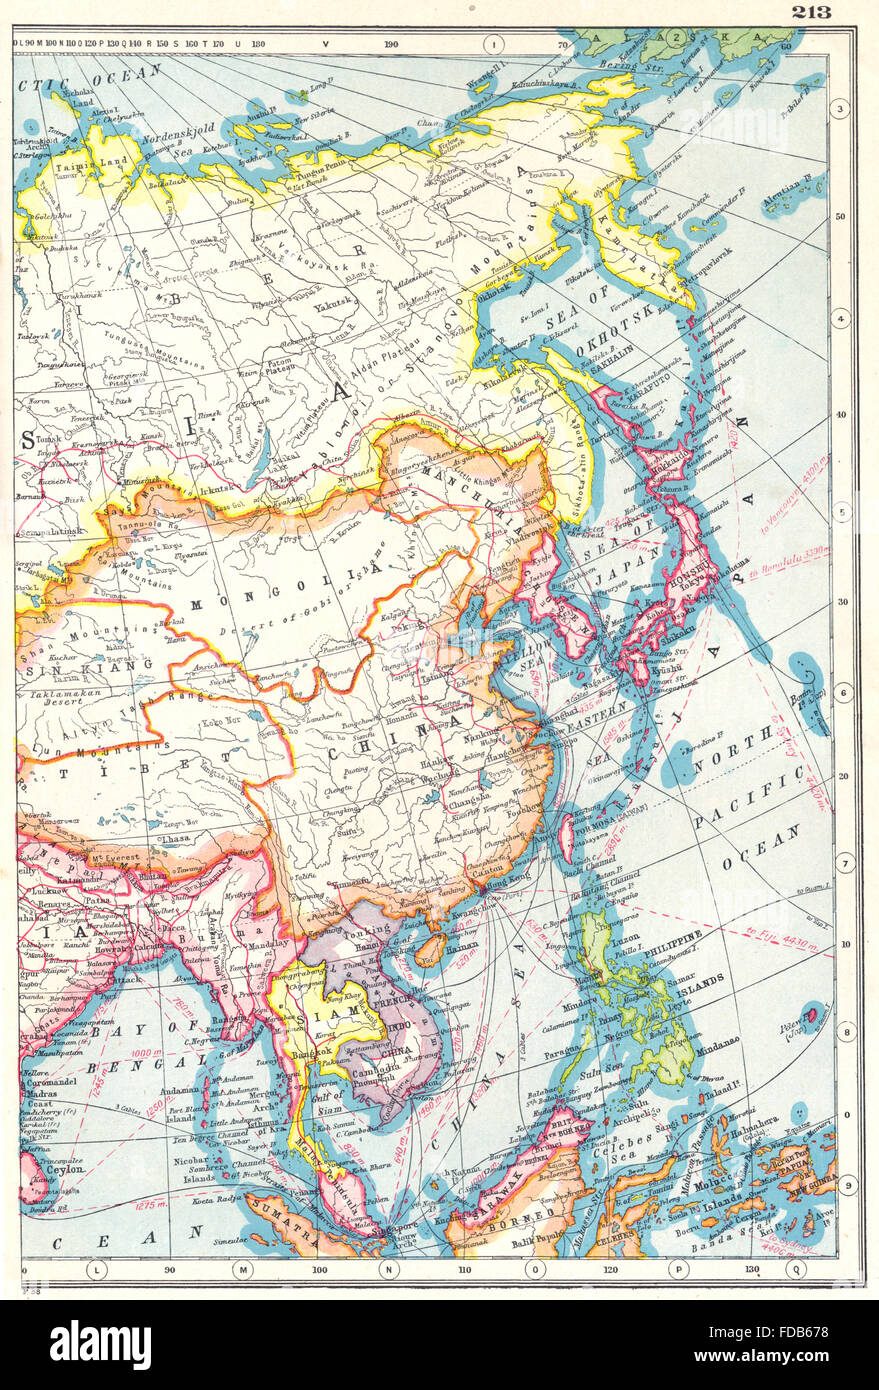 Map china philippines stock photos map china philippines stock east asia china philippines japan korea siam french indochina malaya 1920 map stock gumiabroncs